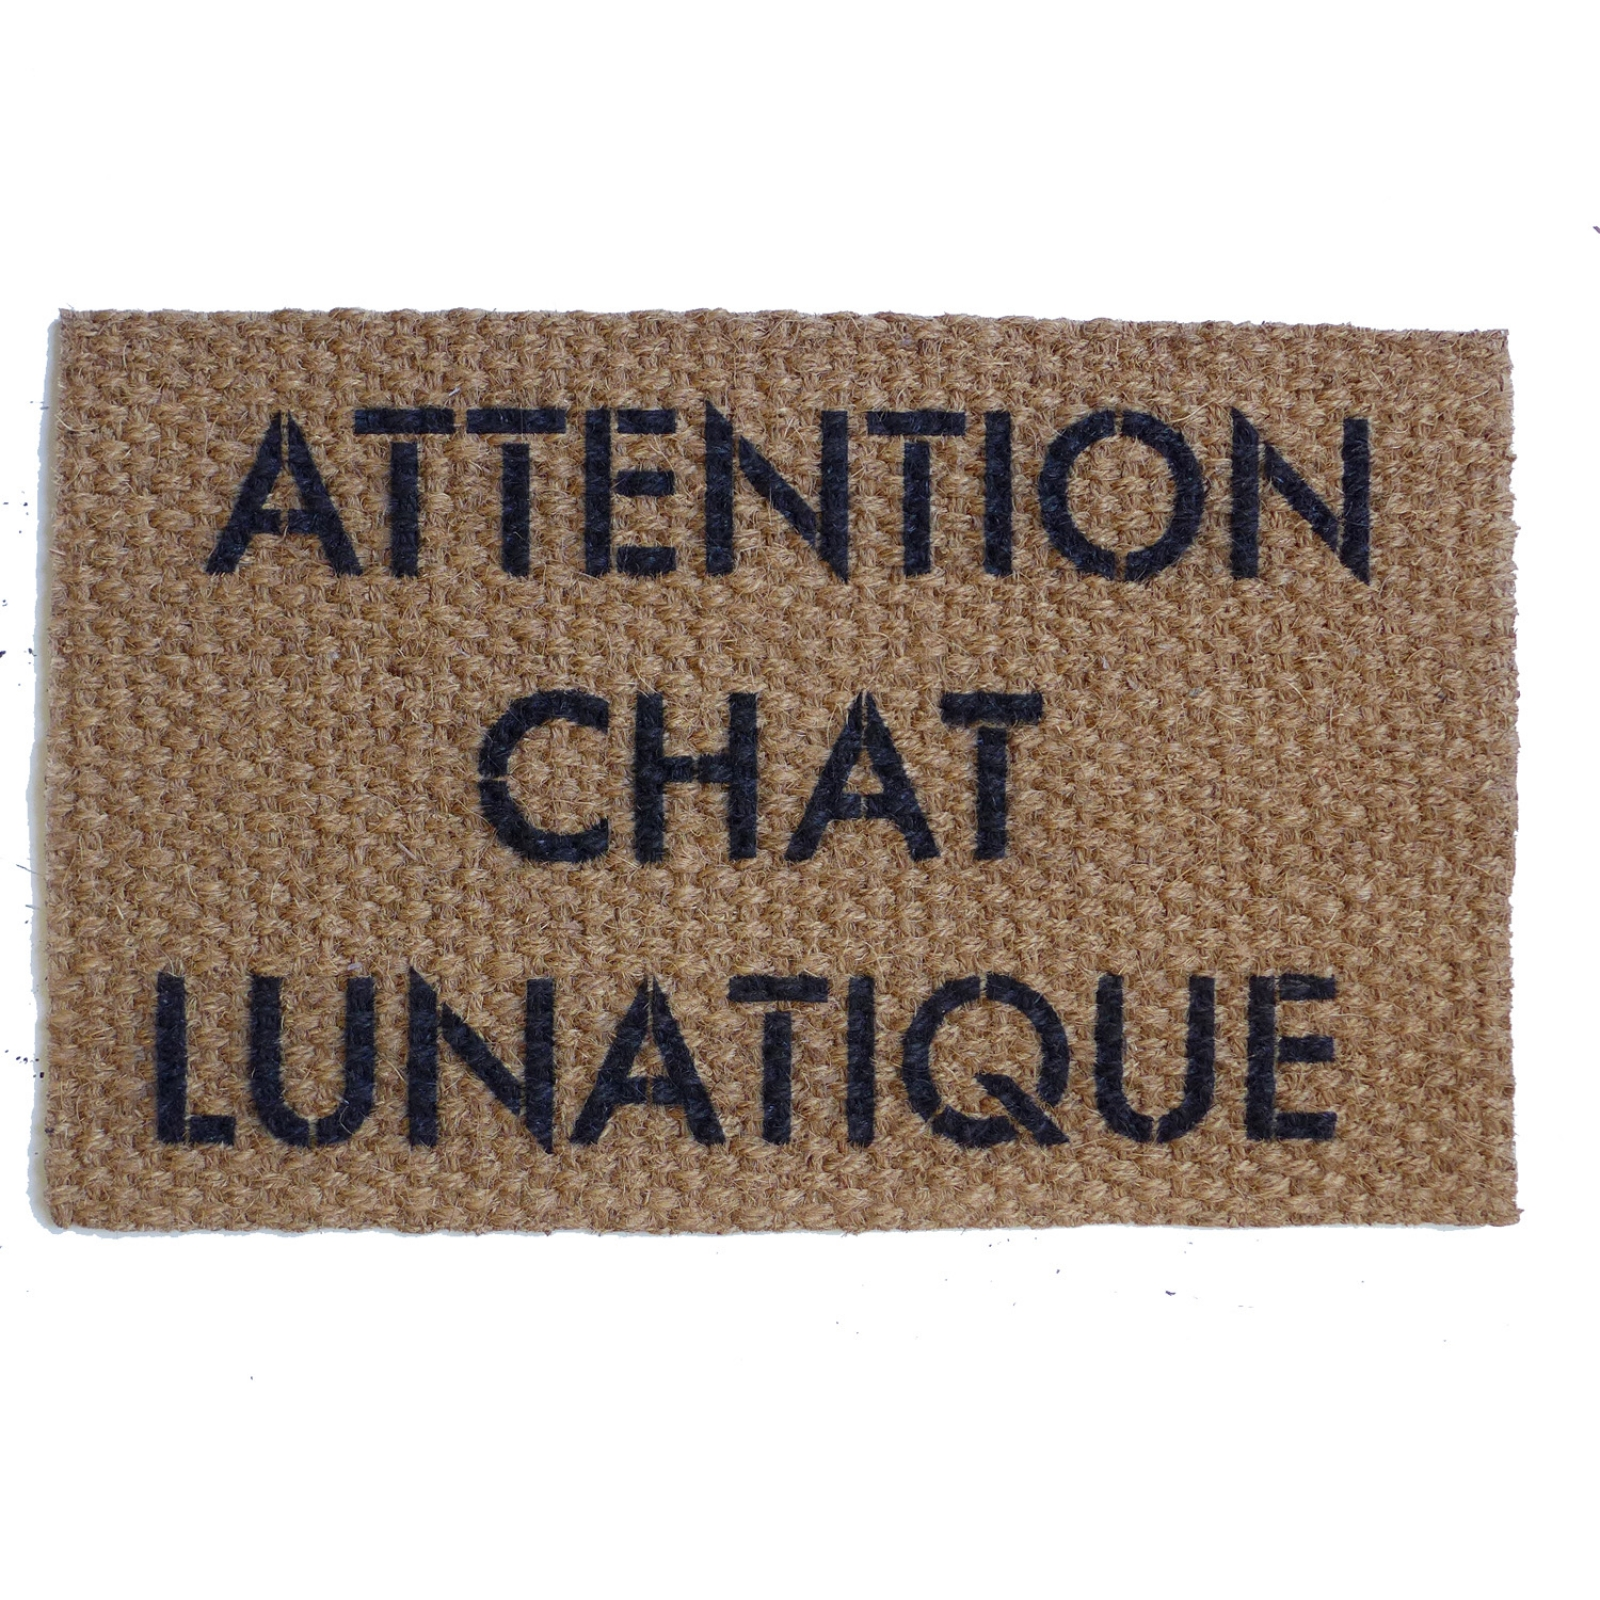 Attention Chat Lunatique French Crazy Cat Doormat Damn